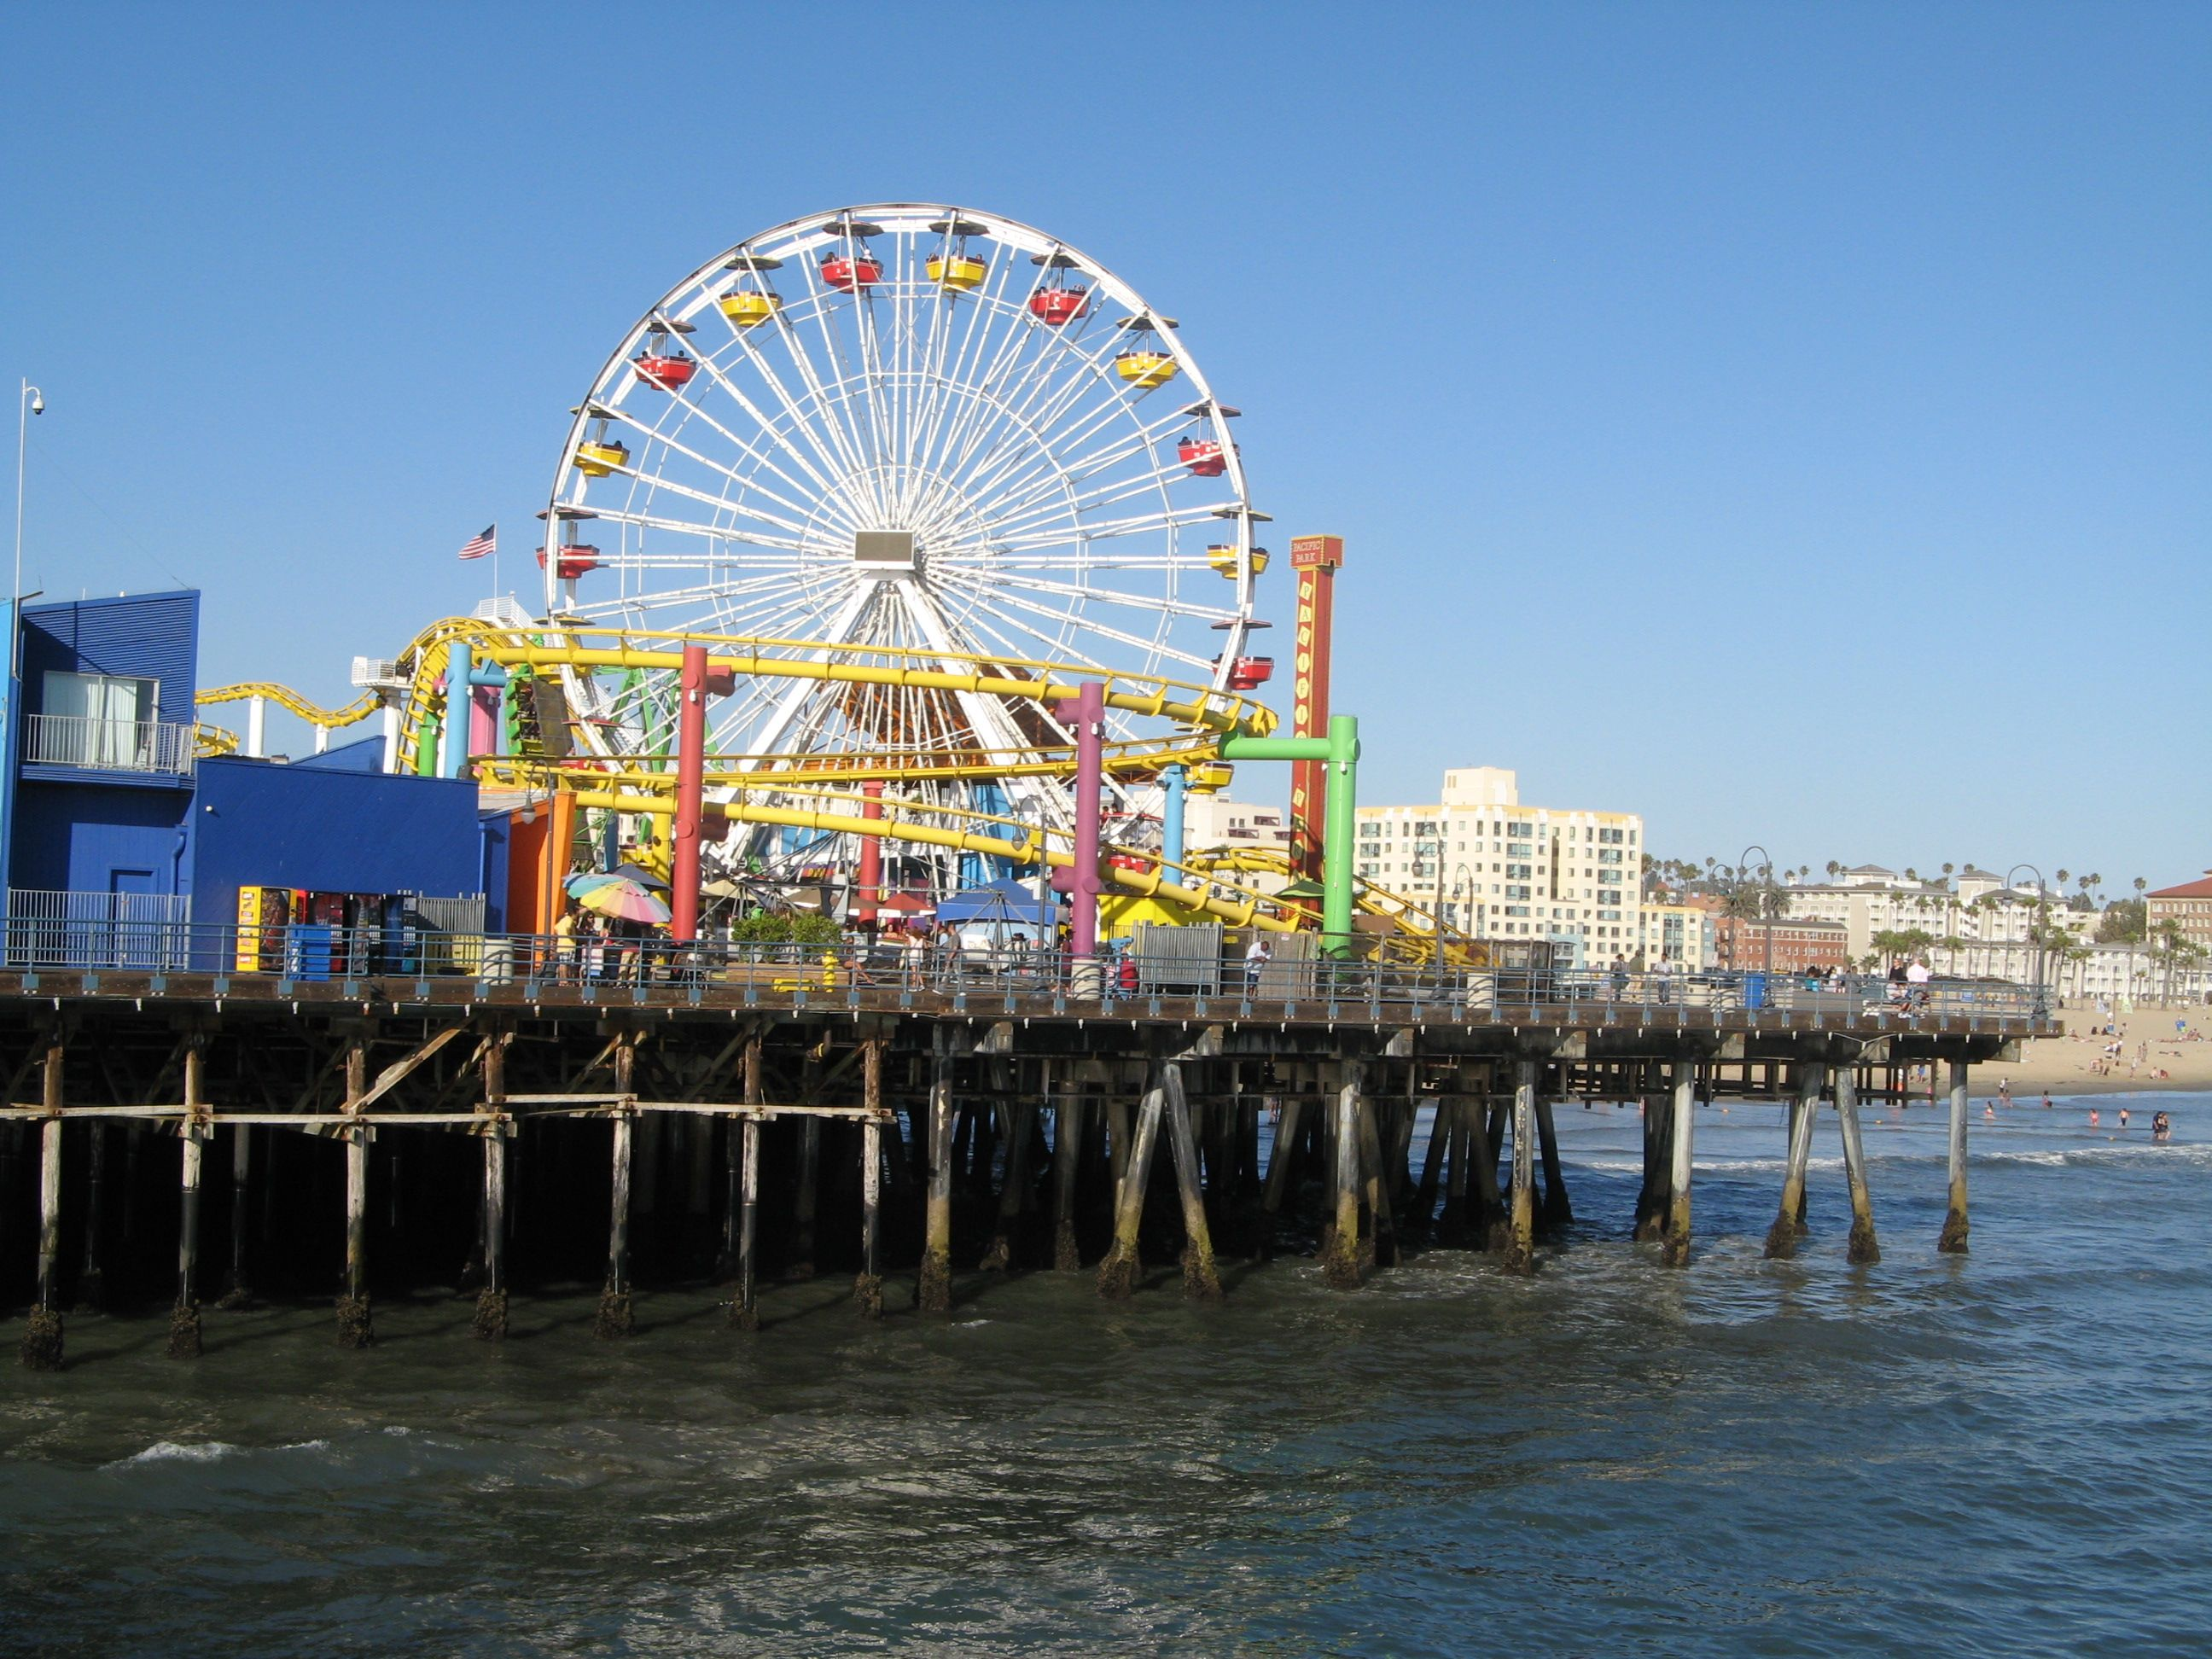 There is a Ferris Wheel on the pier